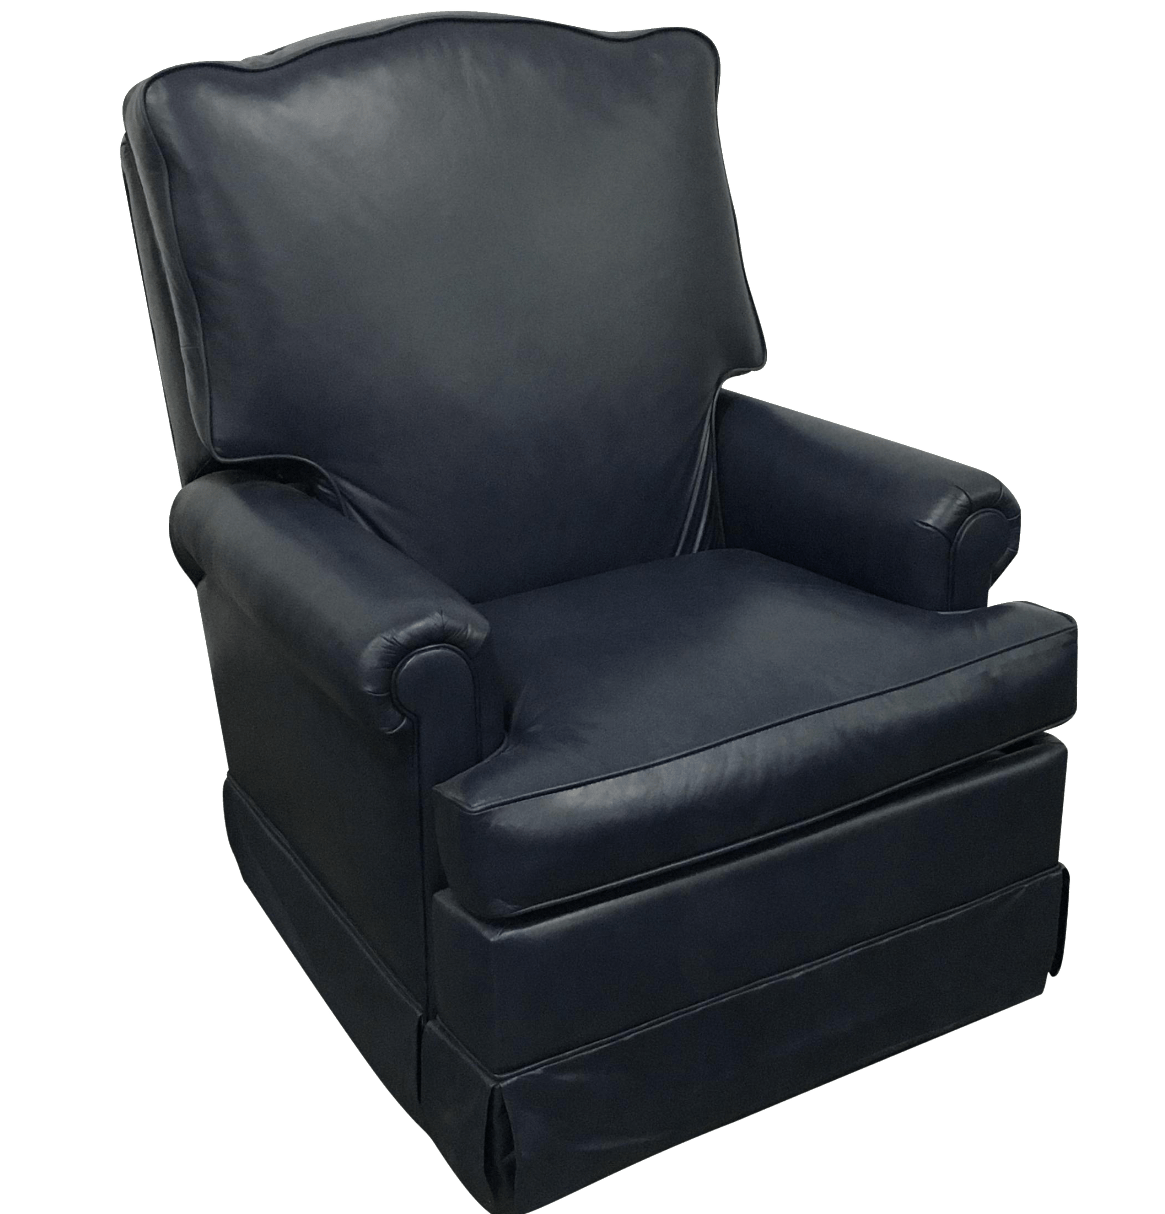 Navy Club Chair Navy Blue Swivel Recliner By Leathercraft Chairish